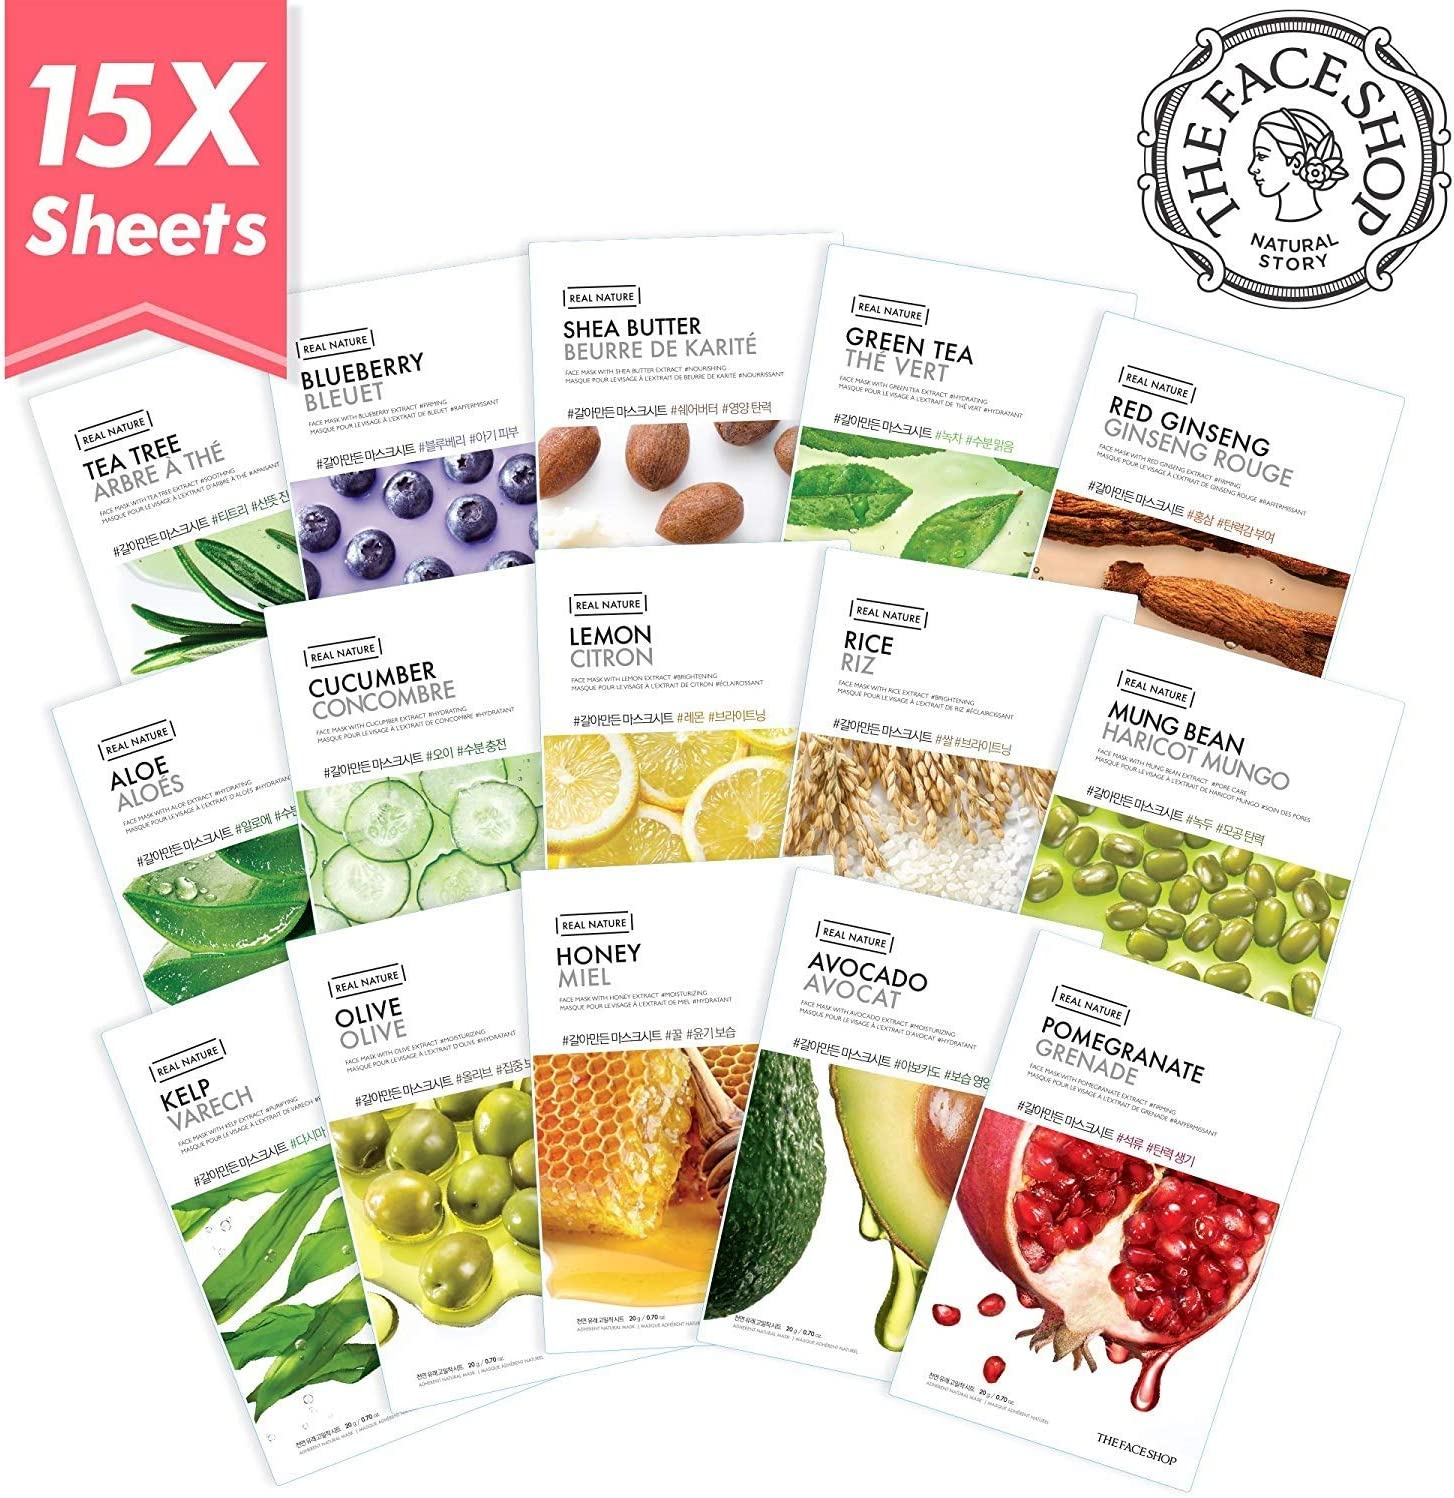 The Face Shop Facial Mask Sheets (15 Treatments), Real Nature Full Face Masks Peel Off Disposable Sheet (Pack of 15), Anti Aging Firming Moisturizing Essence: Amazon.es: Belleza